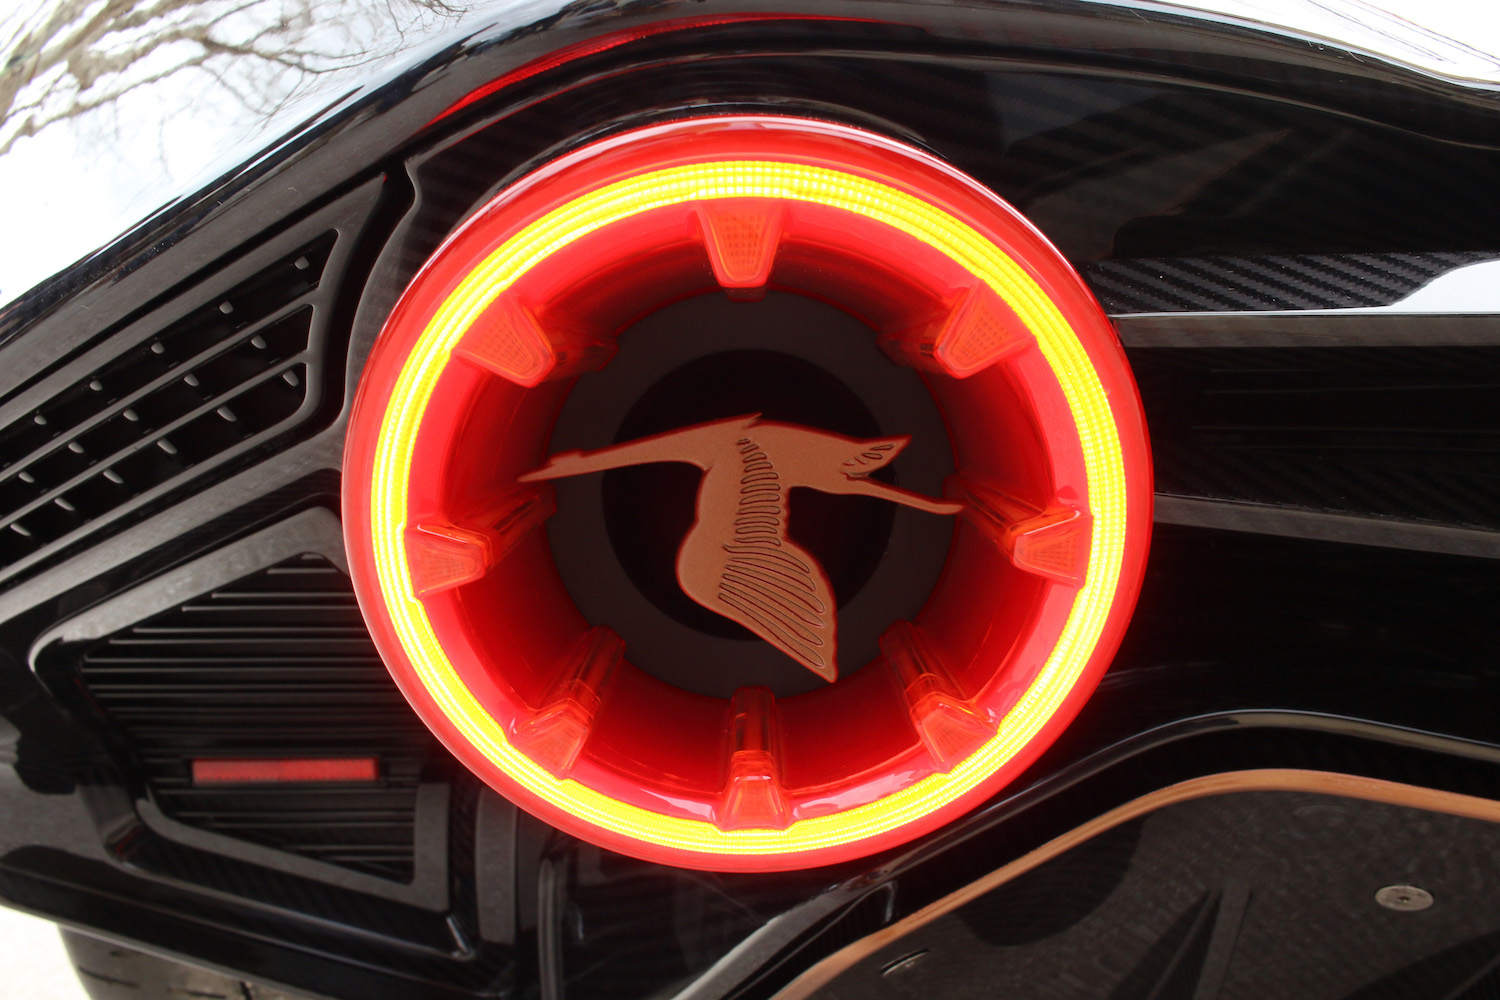 Hispano Suiza taillight closeup